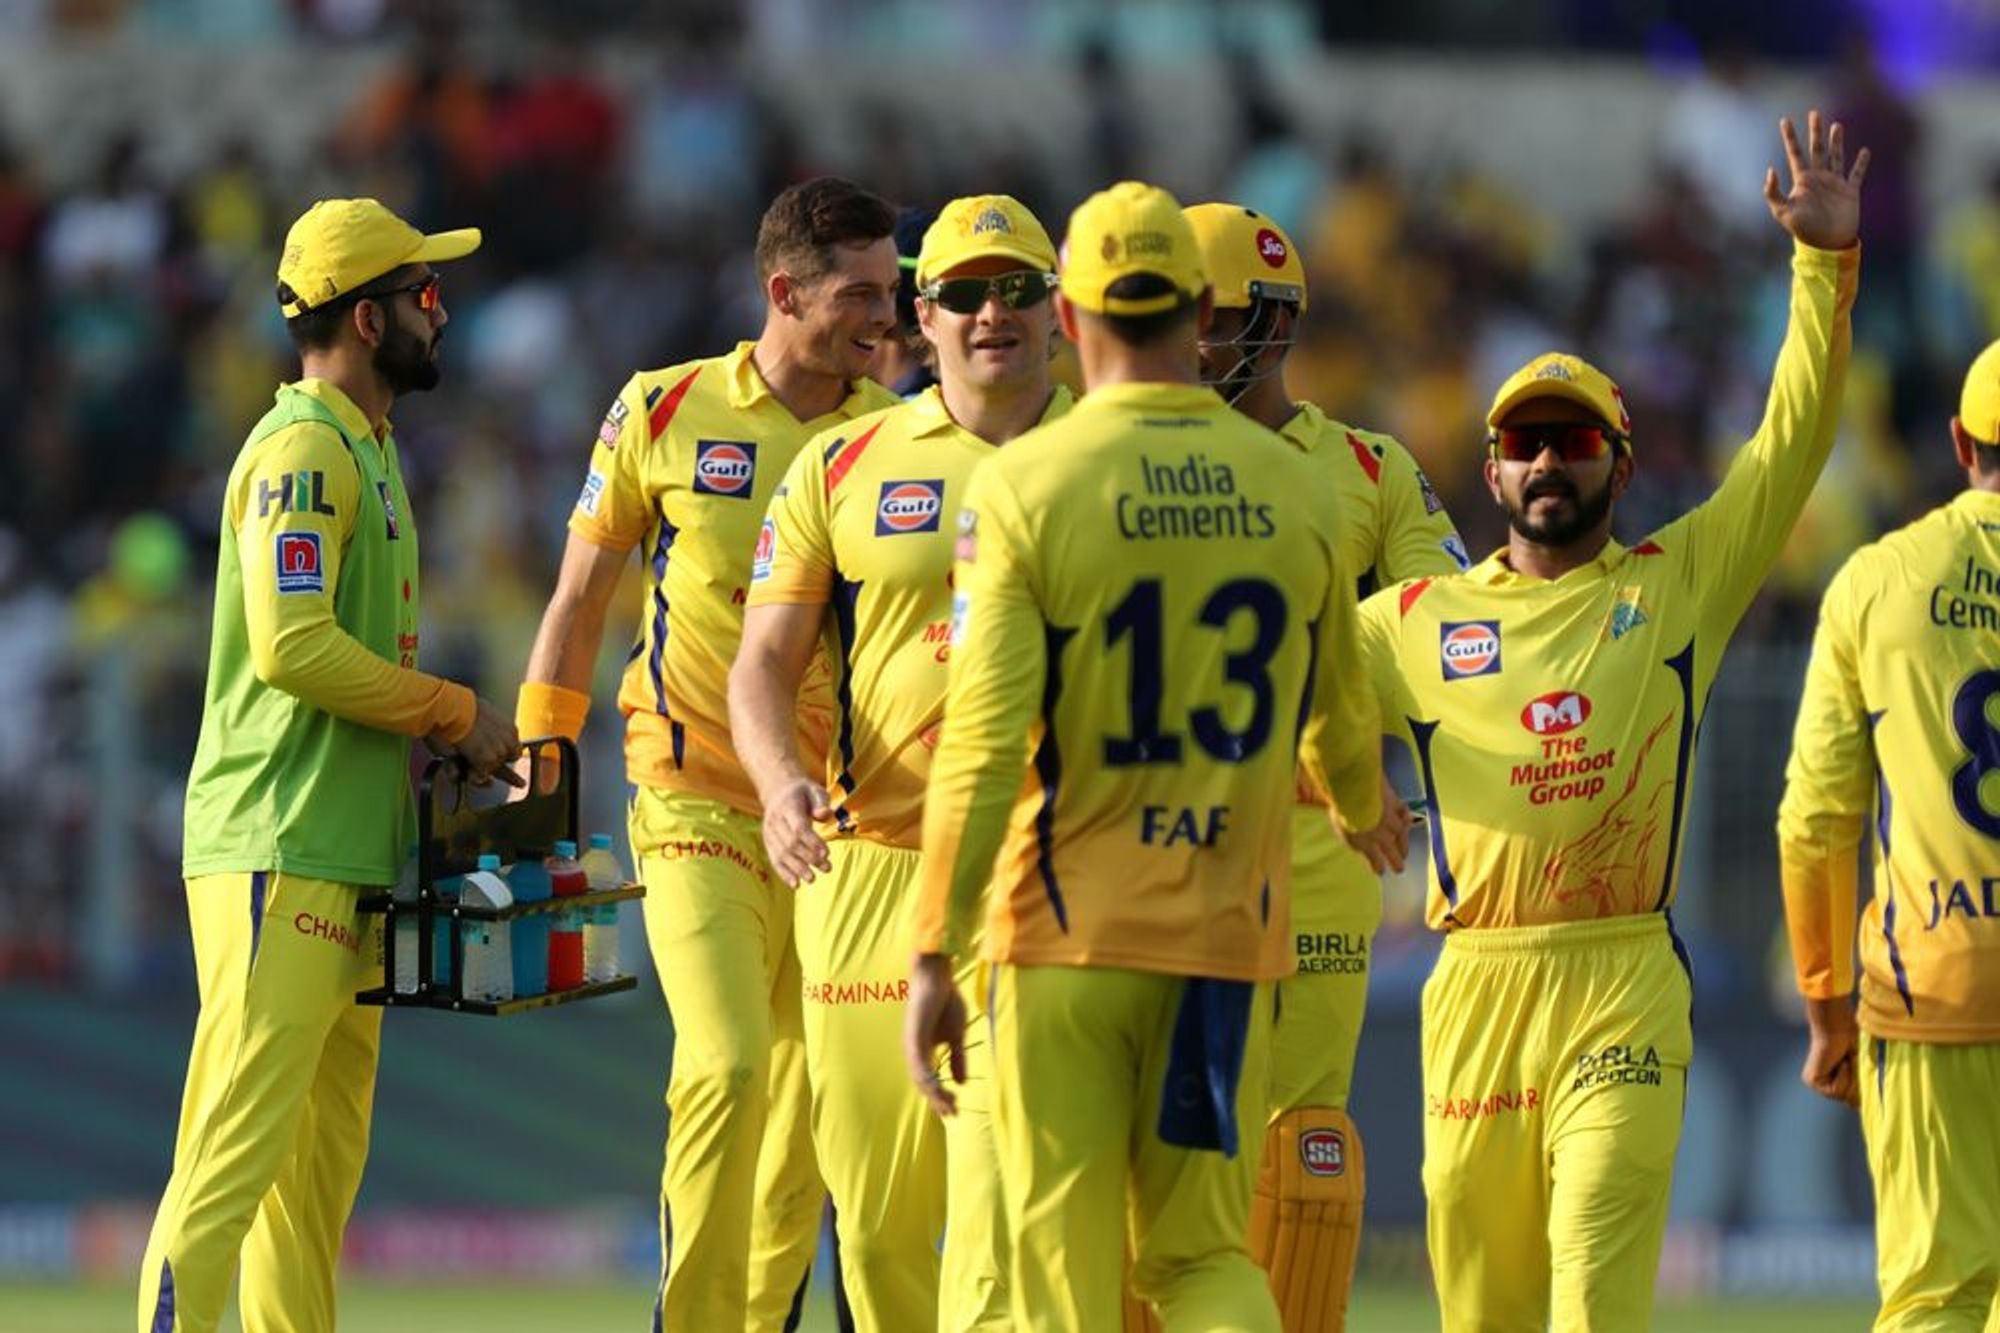 Sunrisers Hyderabad, Chennai Super Kings, CSK, SRH, NewsMobile, Mobile, News, India, Sports, Cricket, IPL, 2019